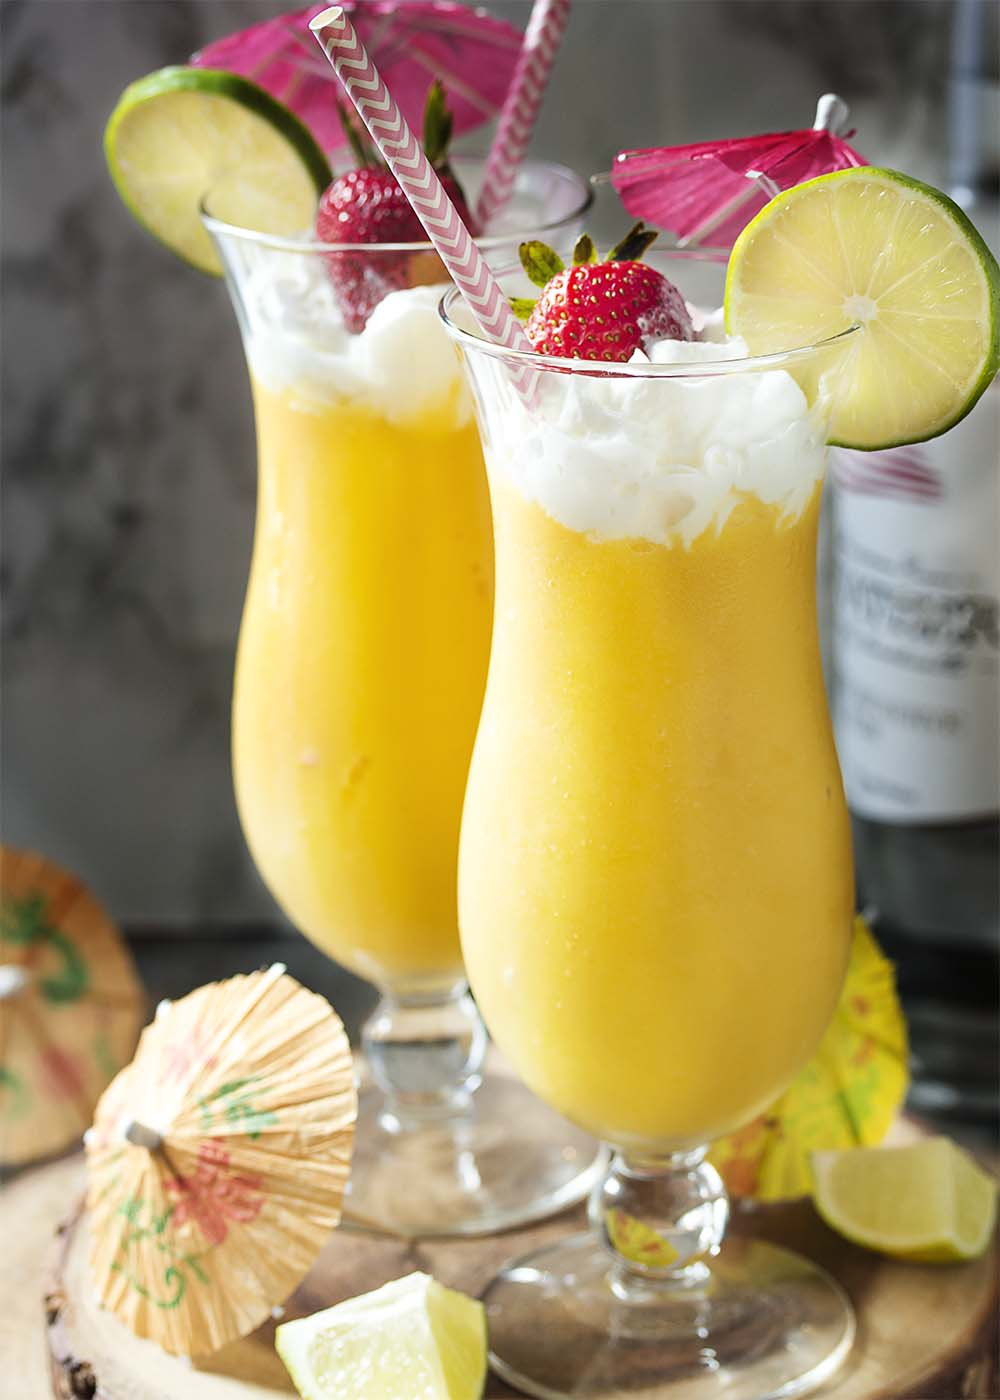 Two tall glasses of mango daiquiri with whipped cream and umbrellas.